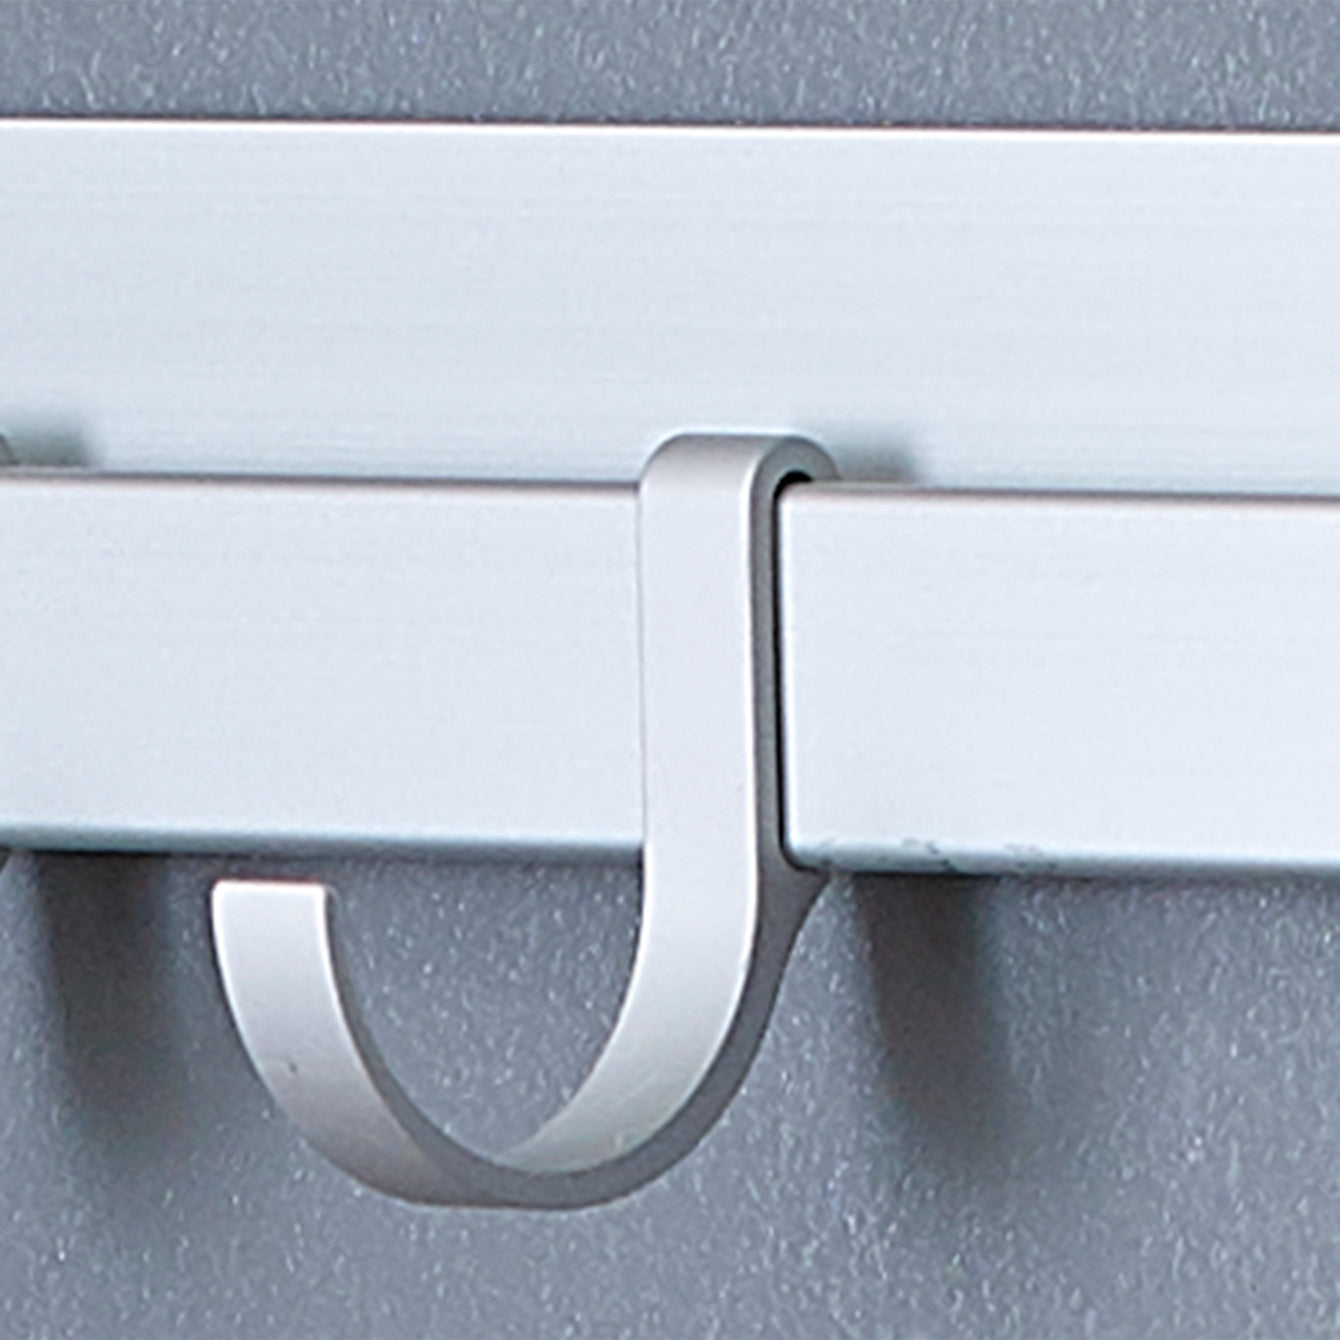 "Neat-trax™ System Adhesive Wall-Mounted 20.5"" Aluminum Track with 6 U-Hooks – Style 1035"